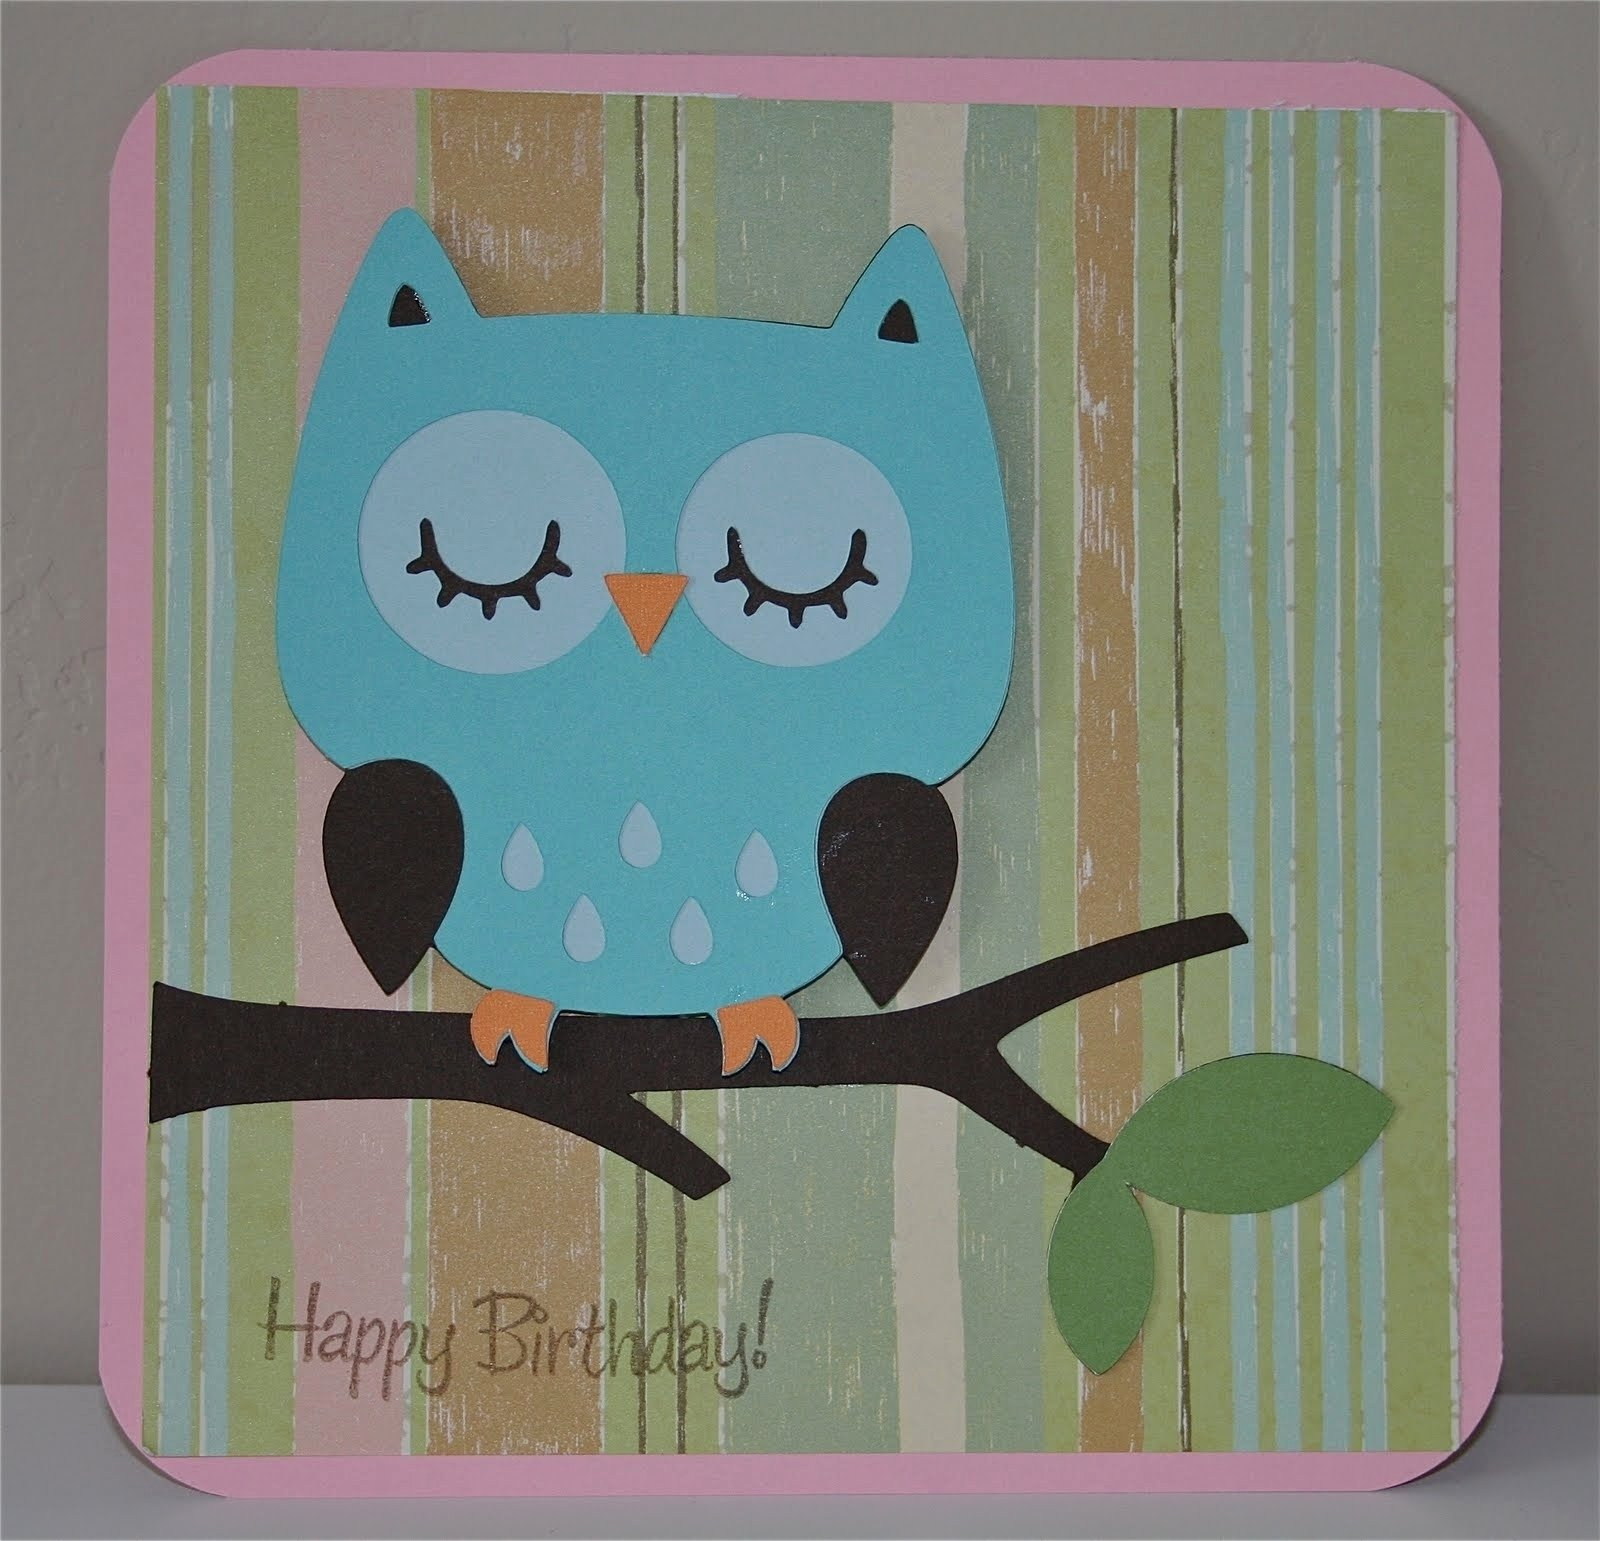 10 Gorgeous Birthday Card Ideas For Kids